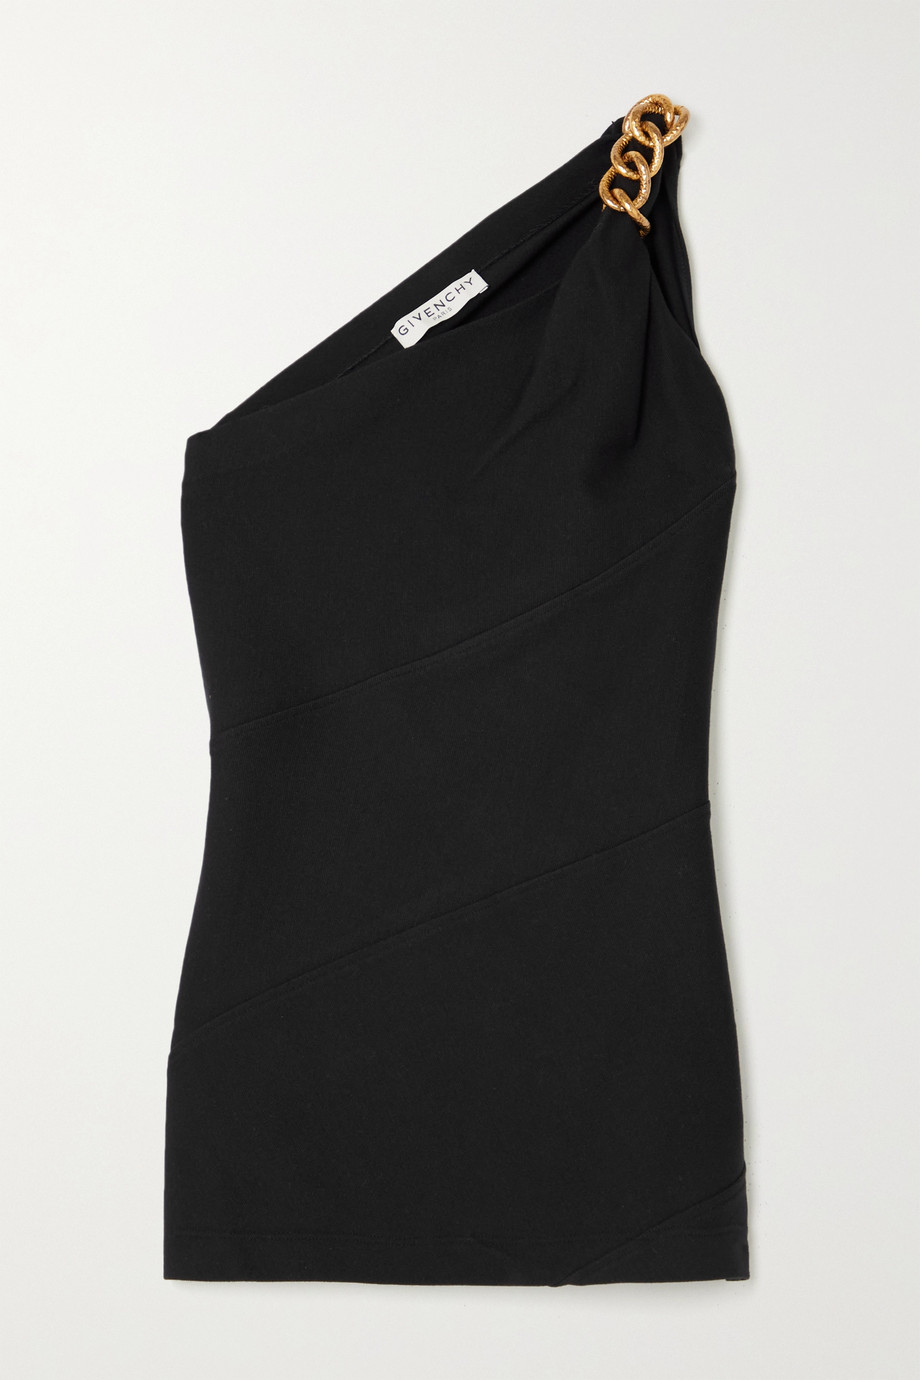 Givenchy One-shoulder chain-embellished stretch-crepe top